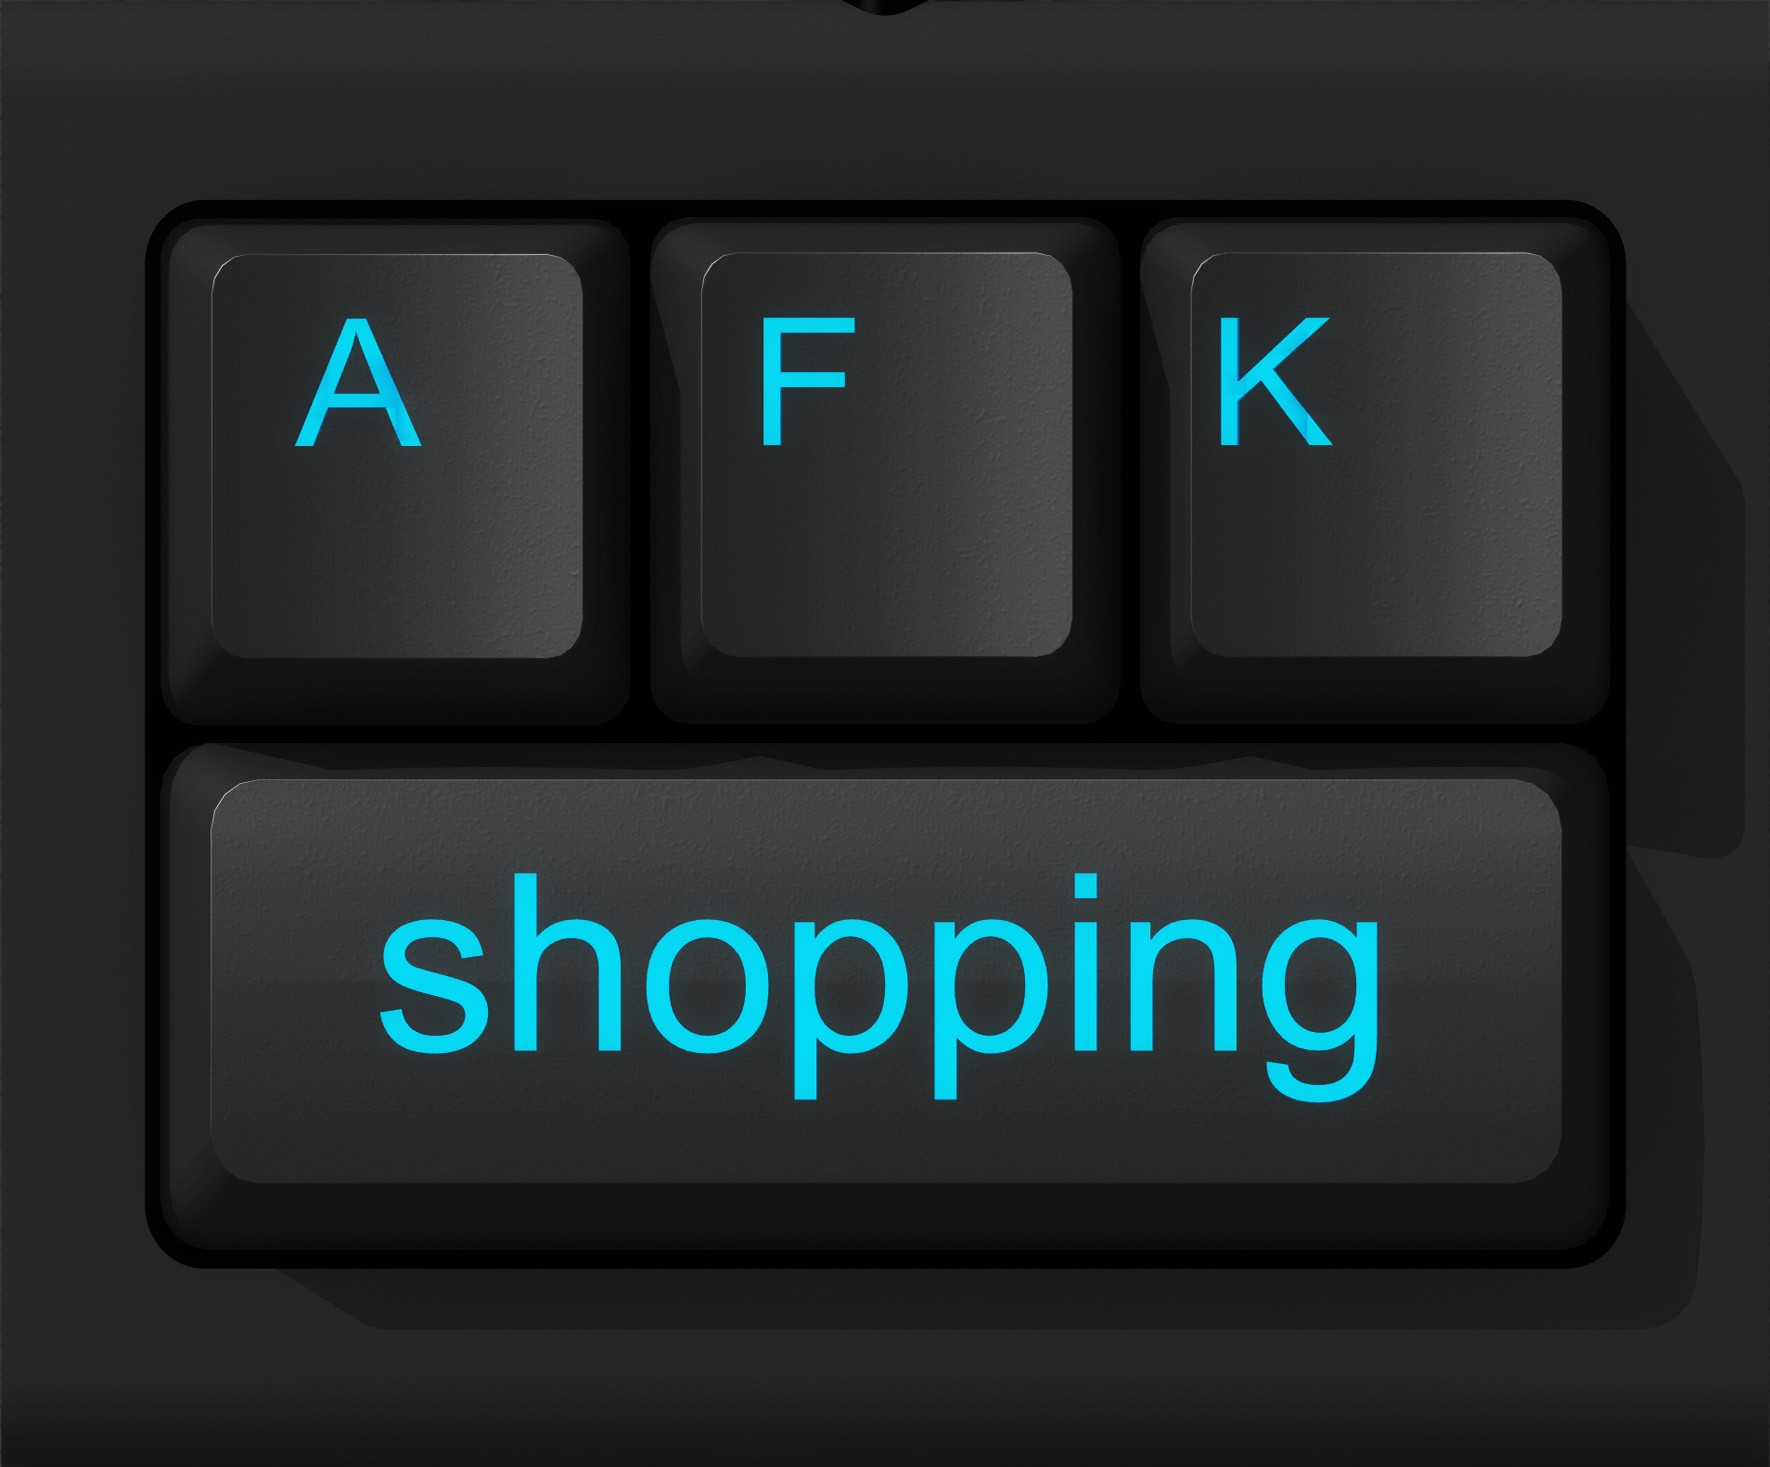 AFK Shopping